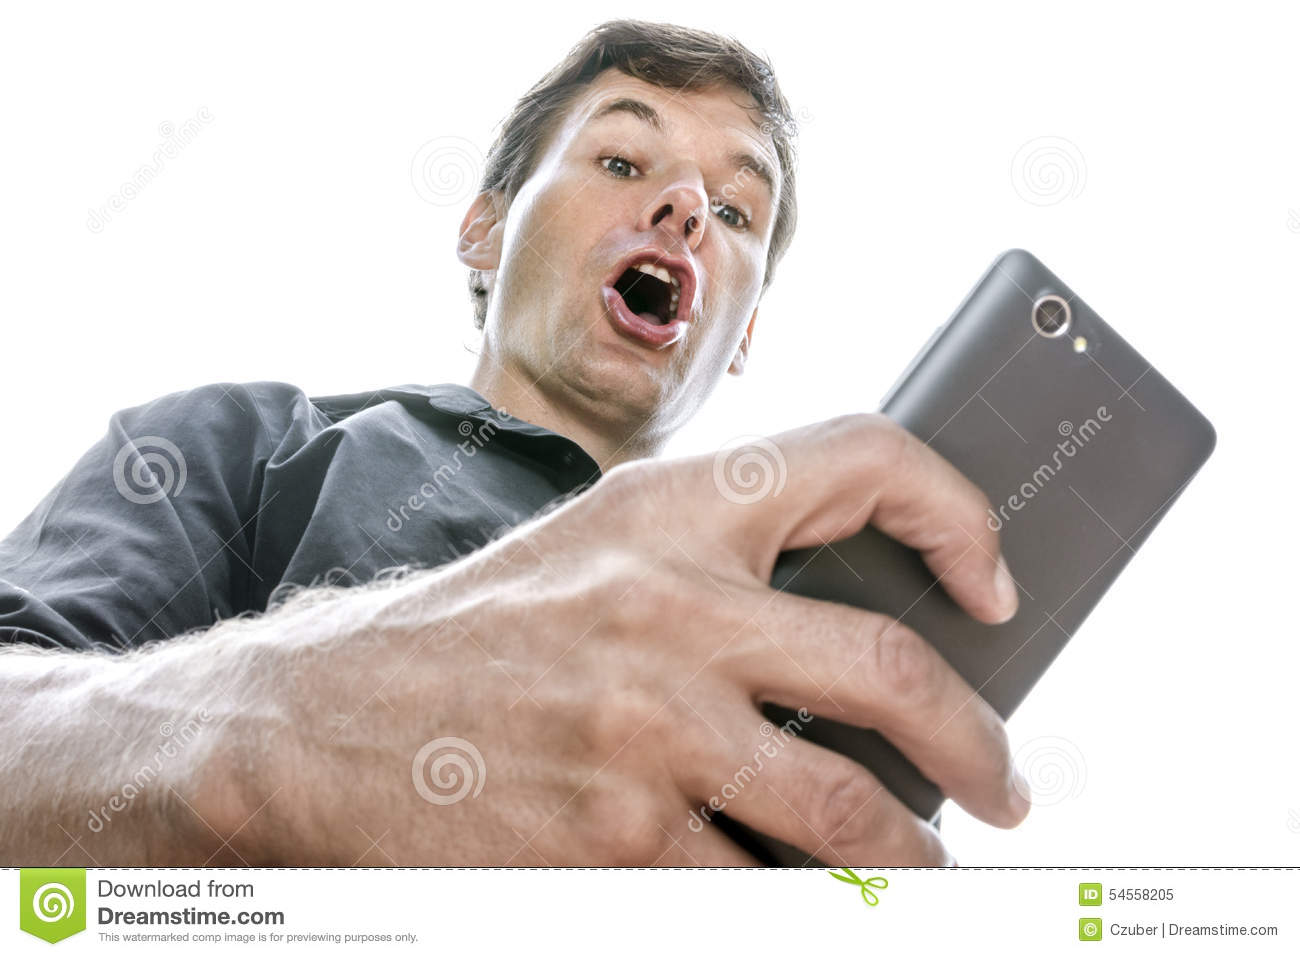 Shocking cell phone text message